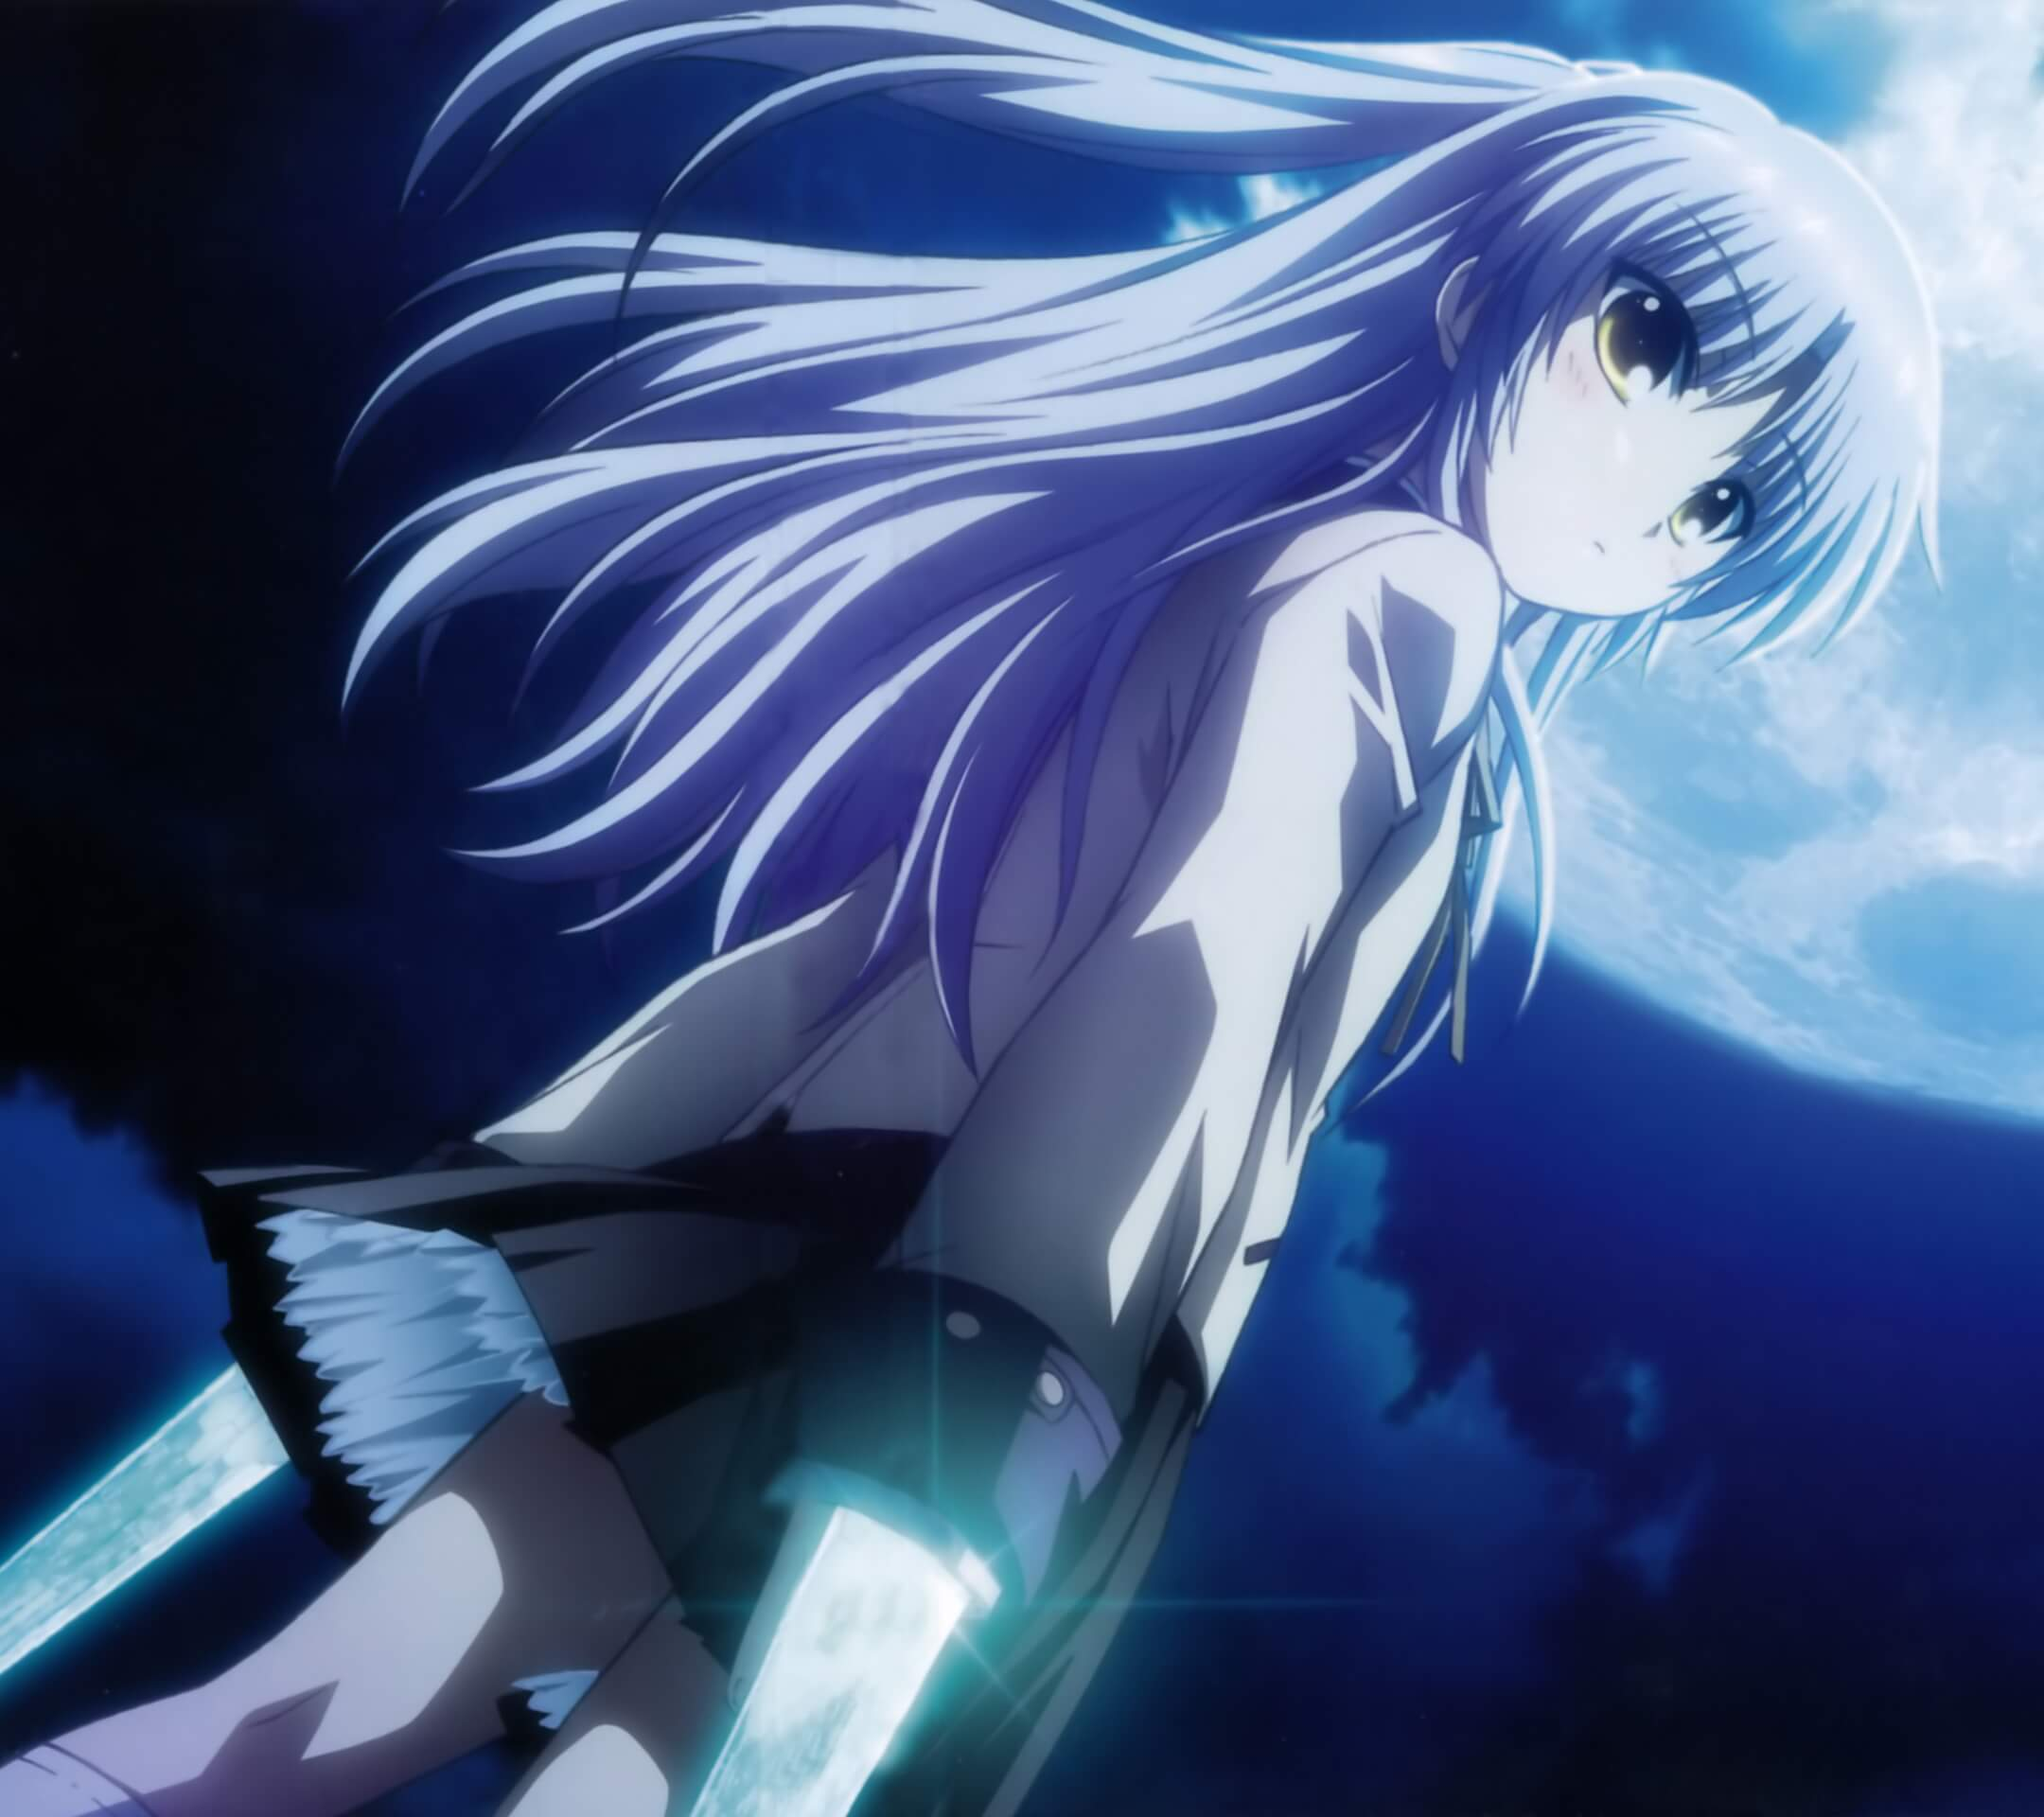 Angel Beats Kanade Tachibana.Android wallpaper 2160x1920